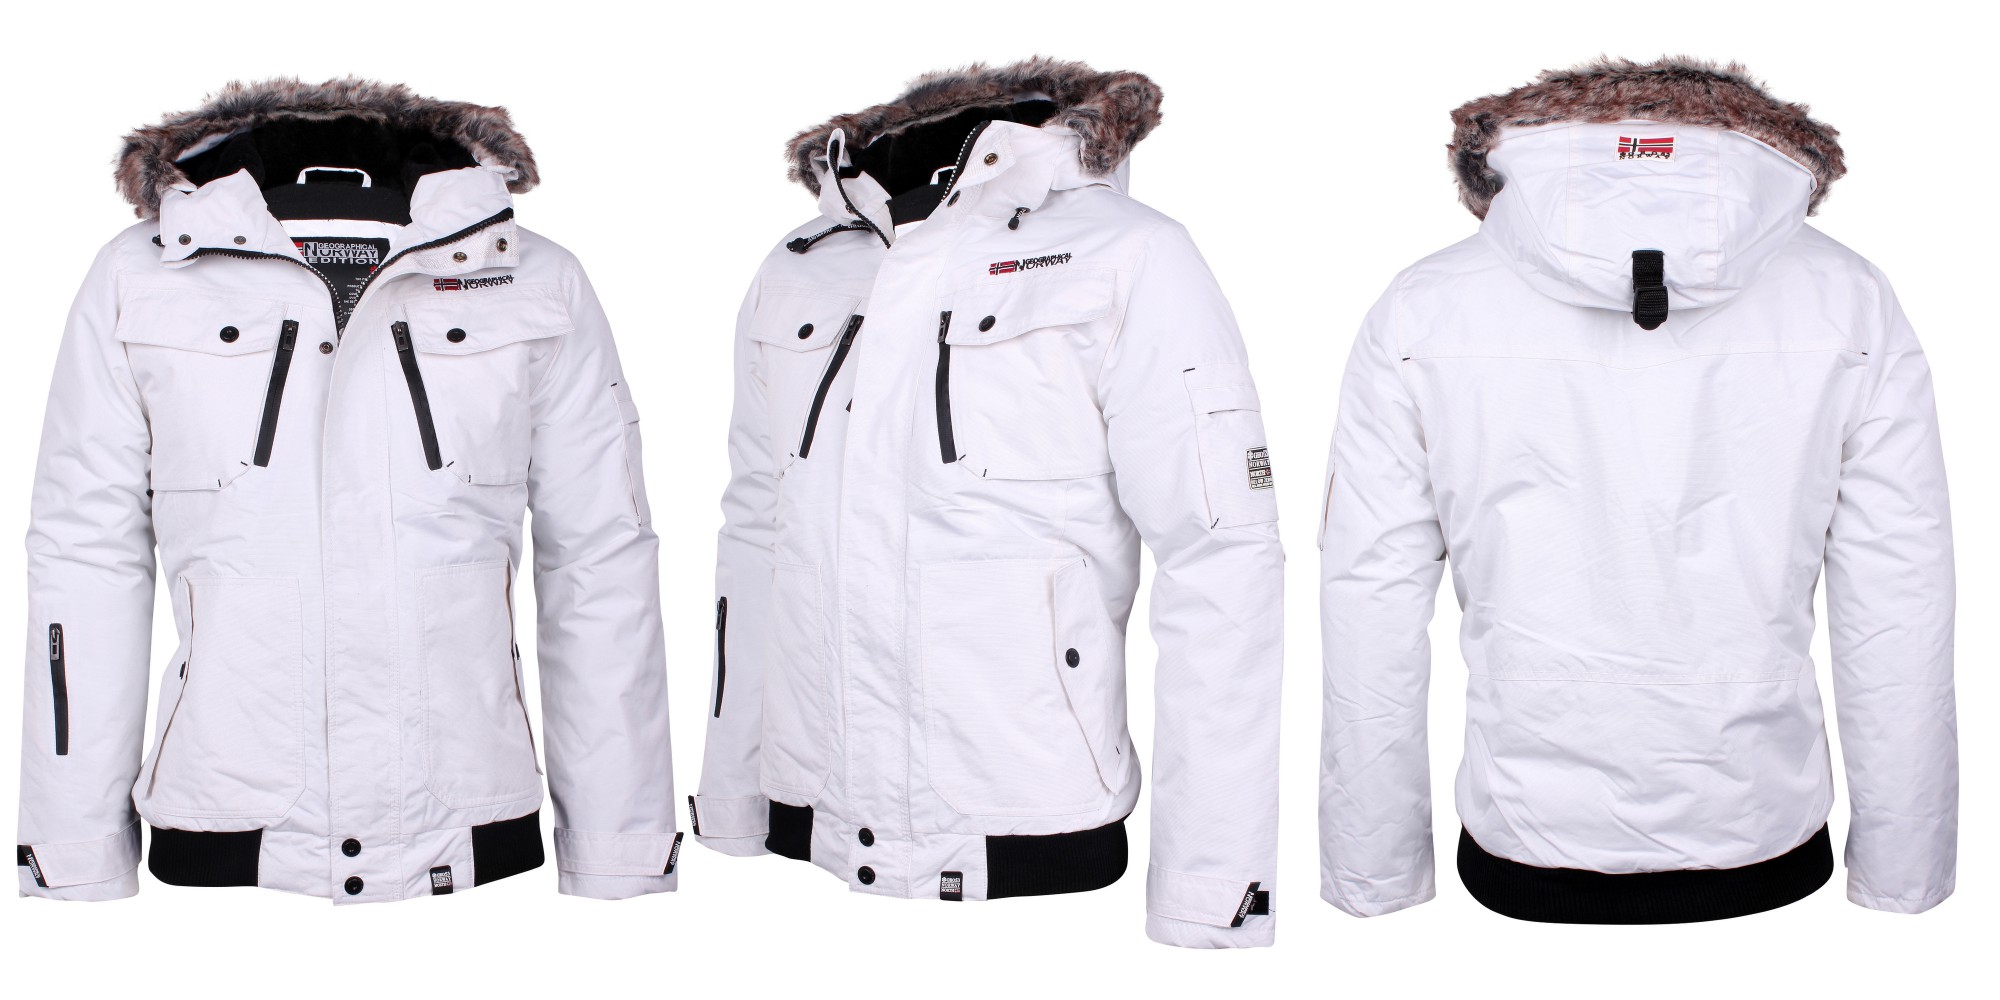 geographical norway winter jacket jacket parka clovis size. Black Bedroom Furniture Sets. Home Design Ideas